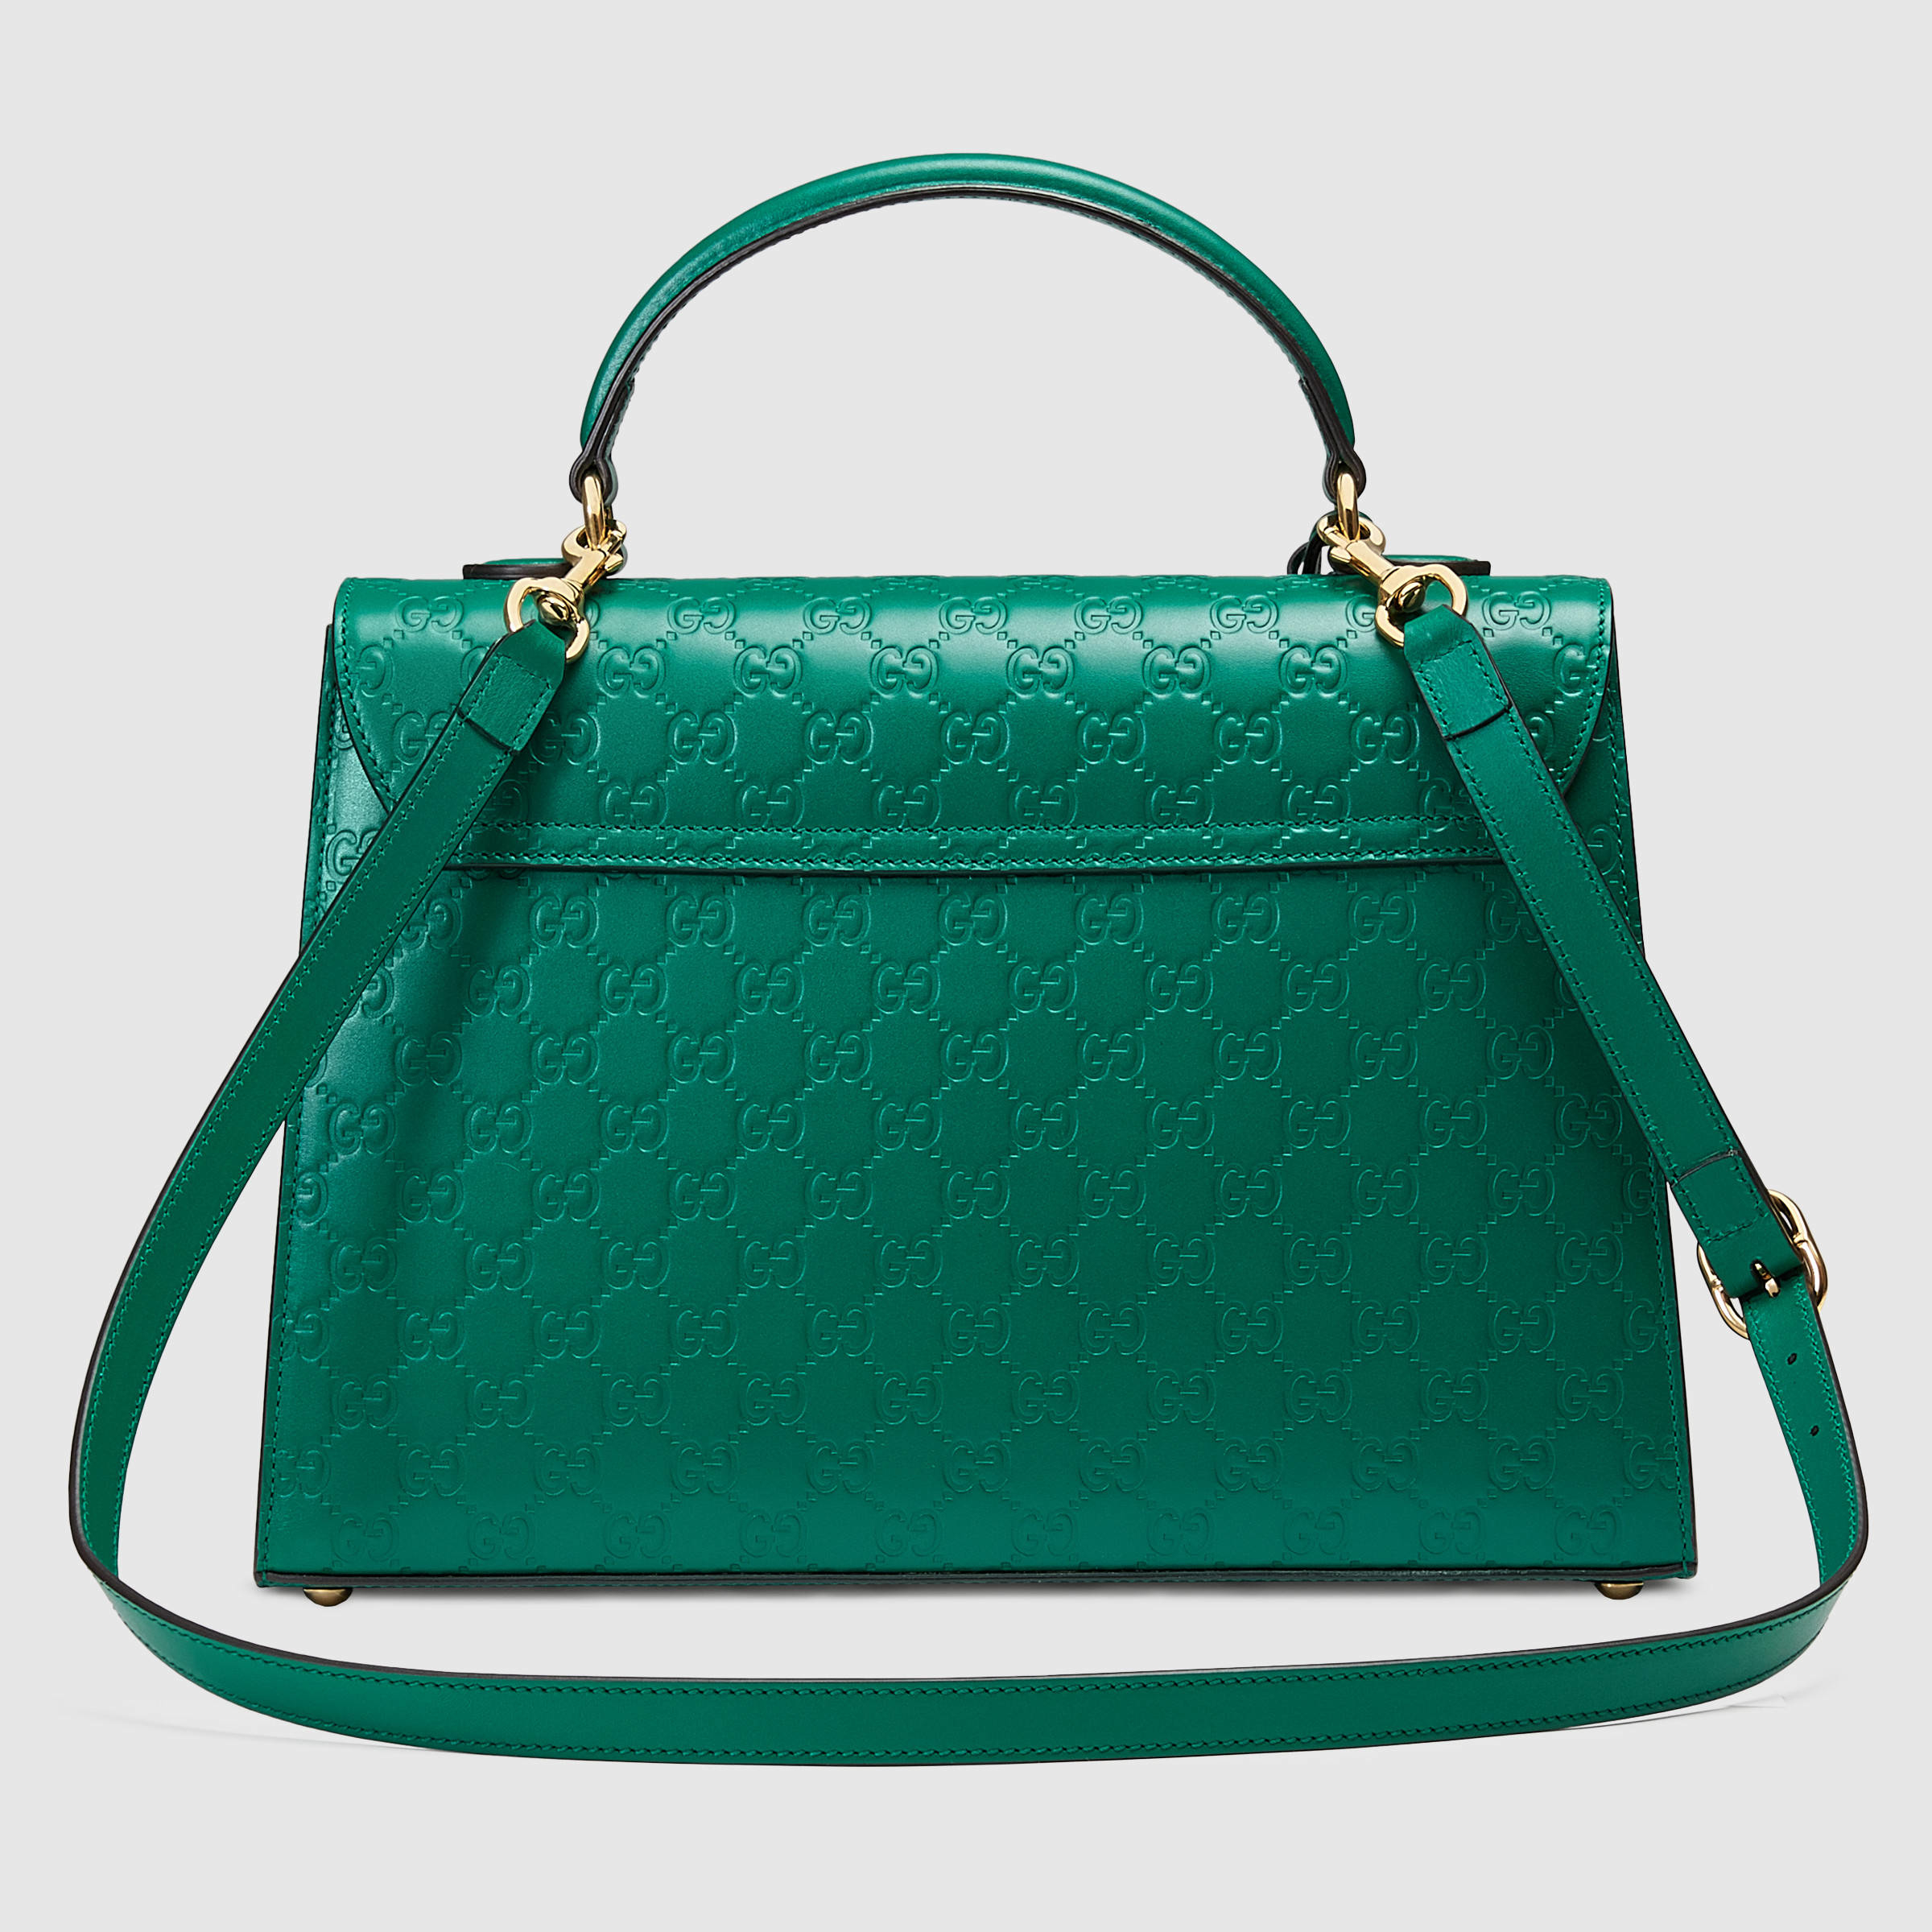 9fd766c8b289 Lyst - Gucci Padlock Signature Top Handle Leather Bag in Green